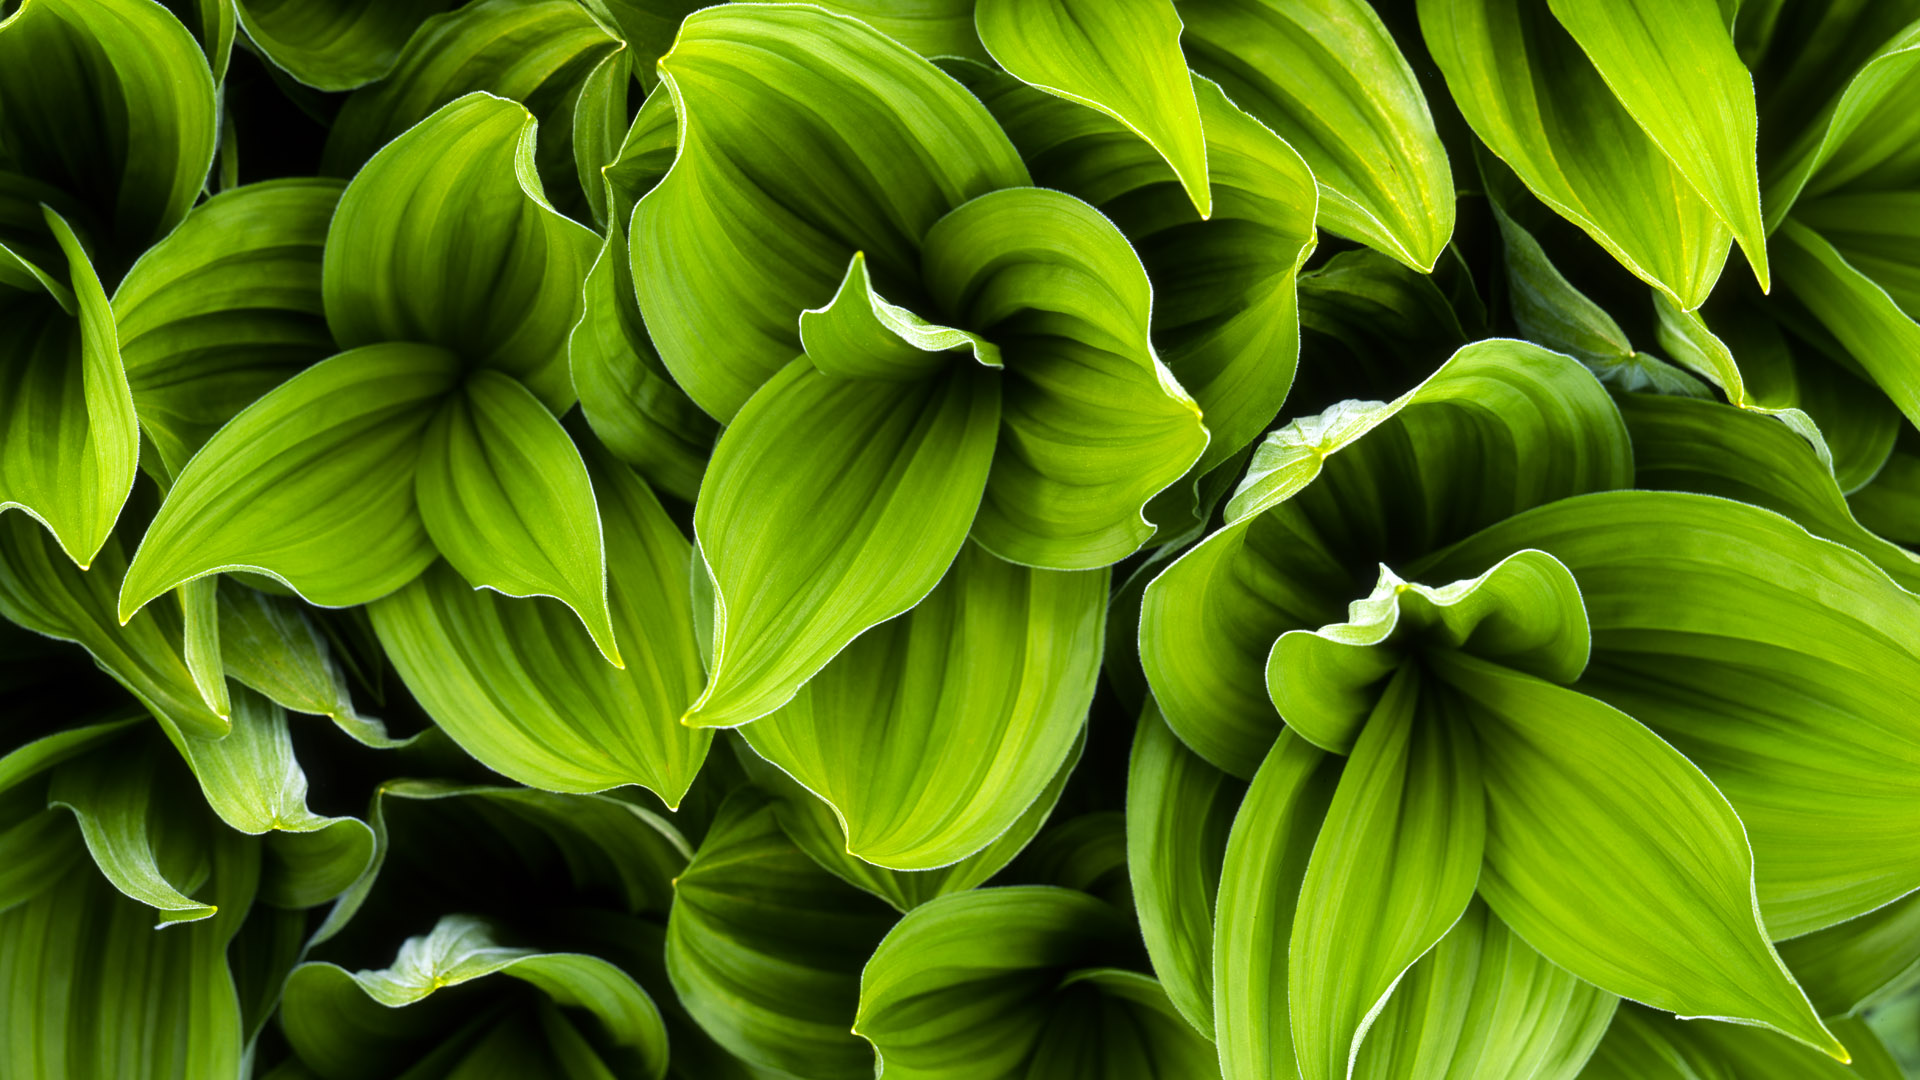 Green Plant Leaves Hd Wallpaper Hd Green Leaves Background